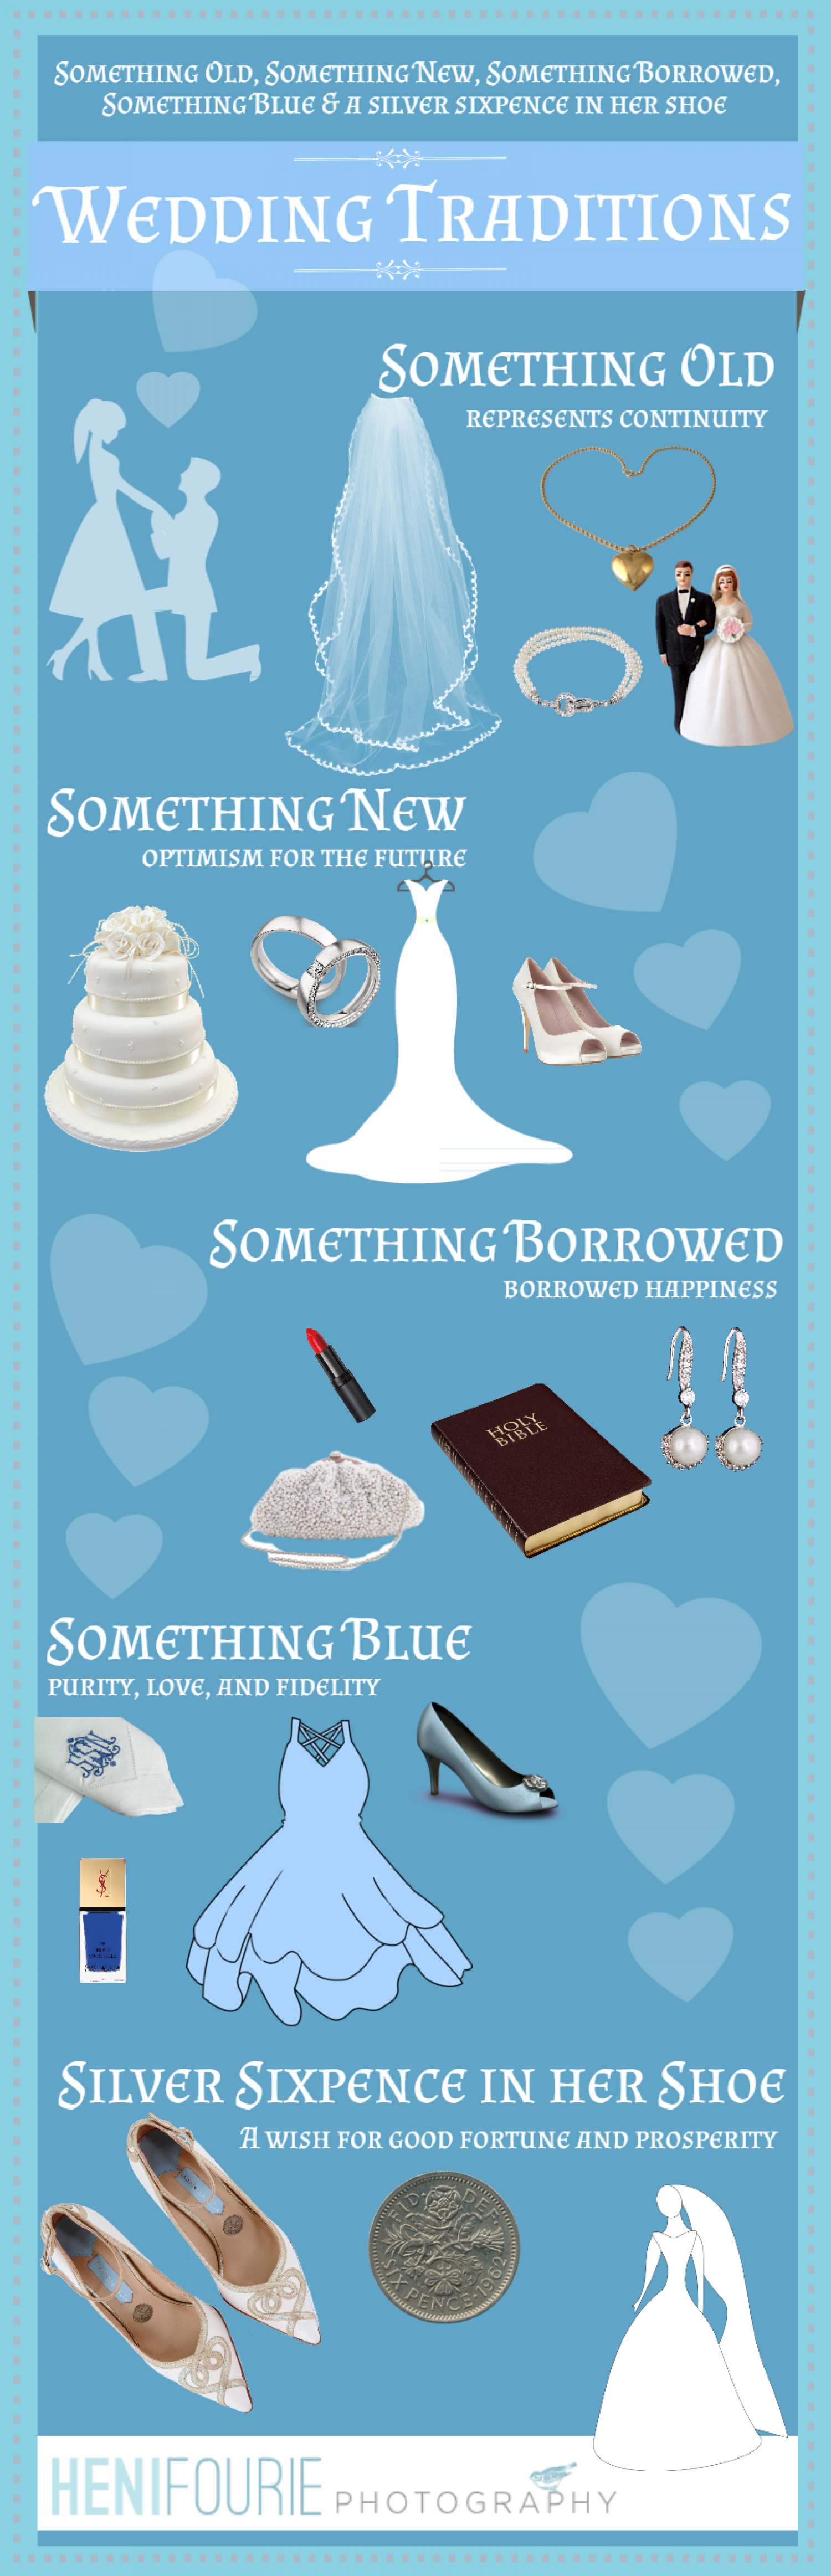 Something Old, New, Borrowed, Blue & a Sixpence in Her Shoe Infographic